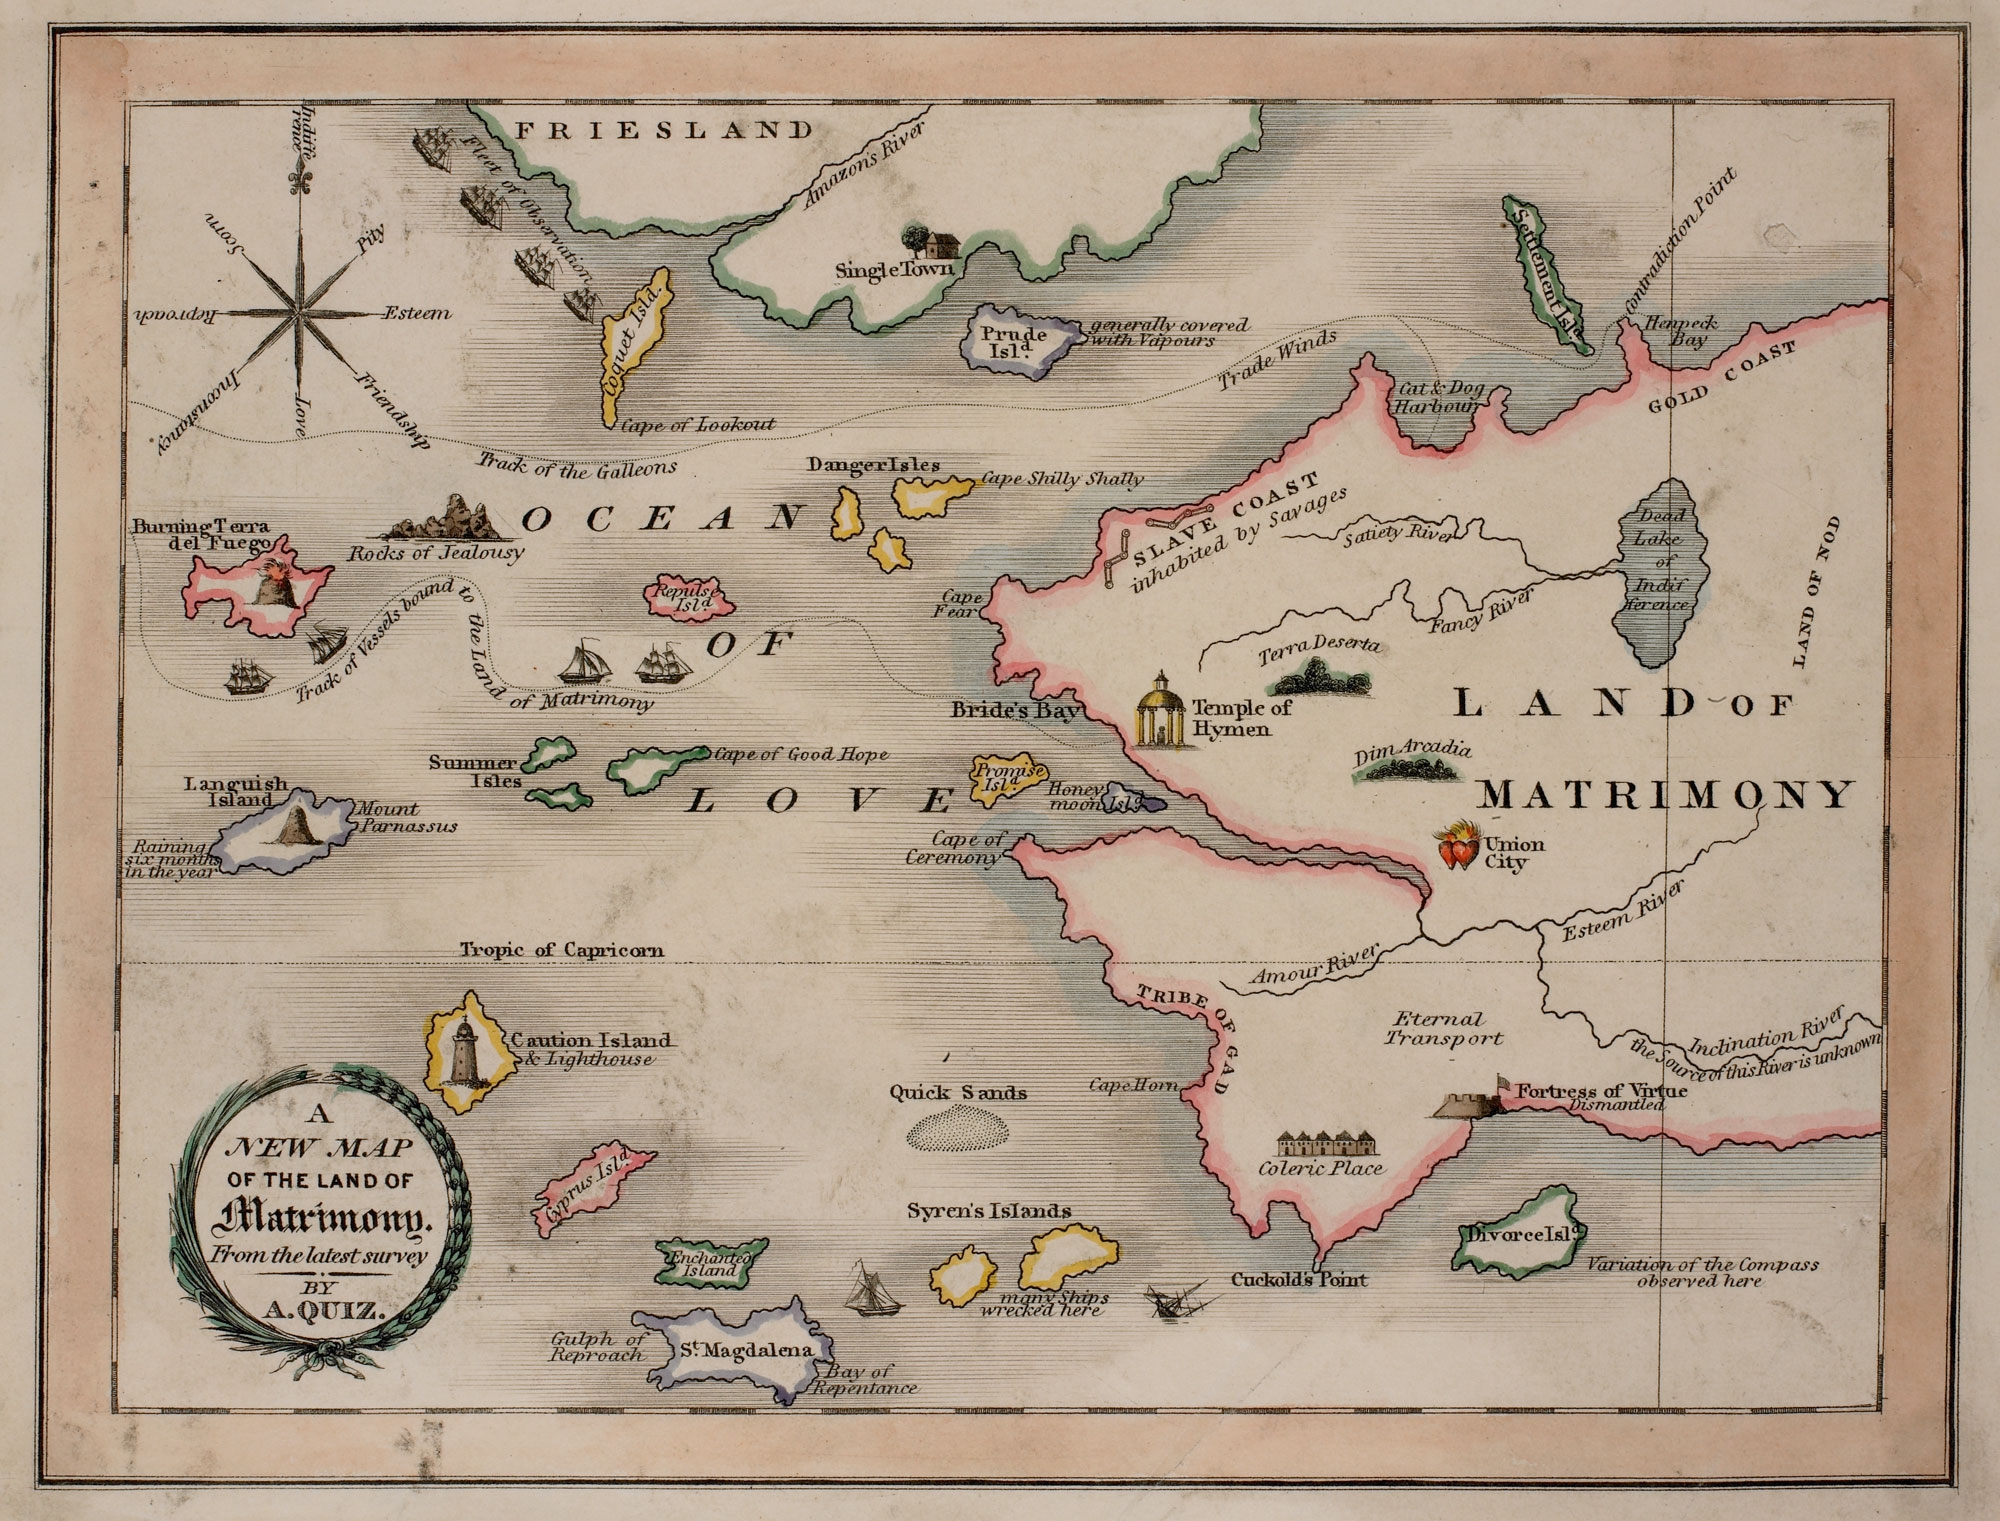 Map of the land of matrimony - The British Library